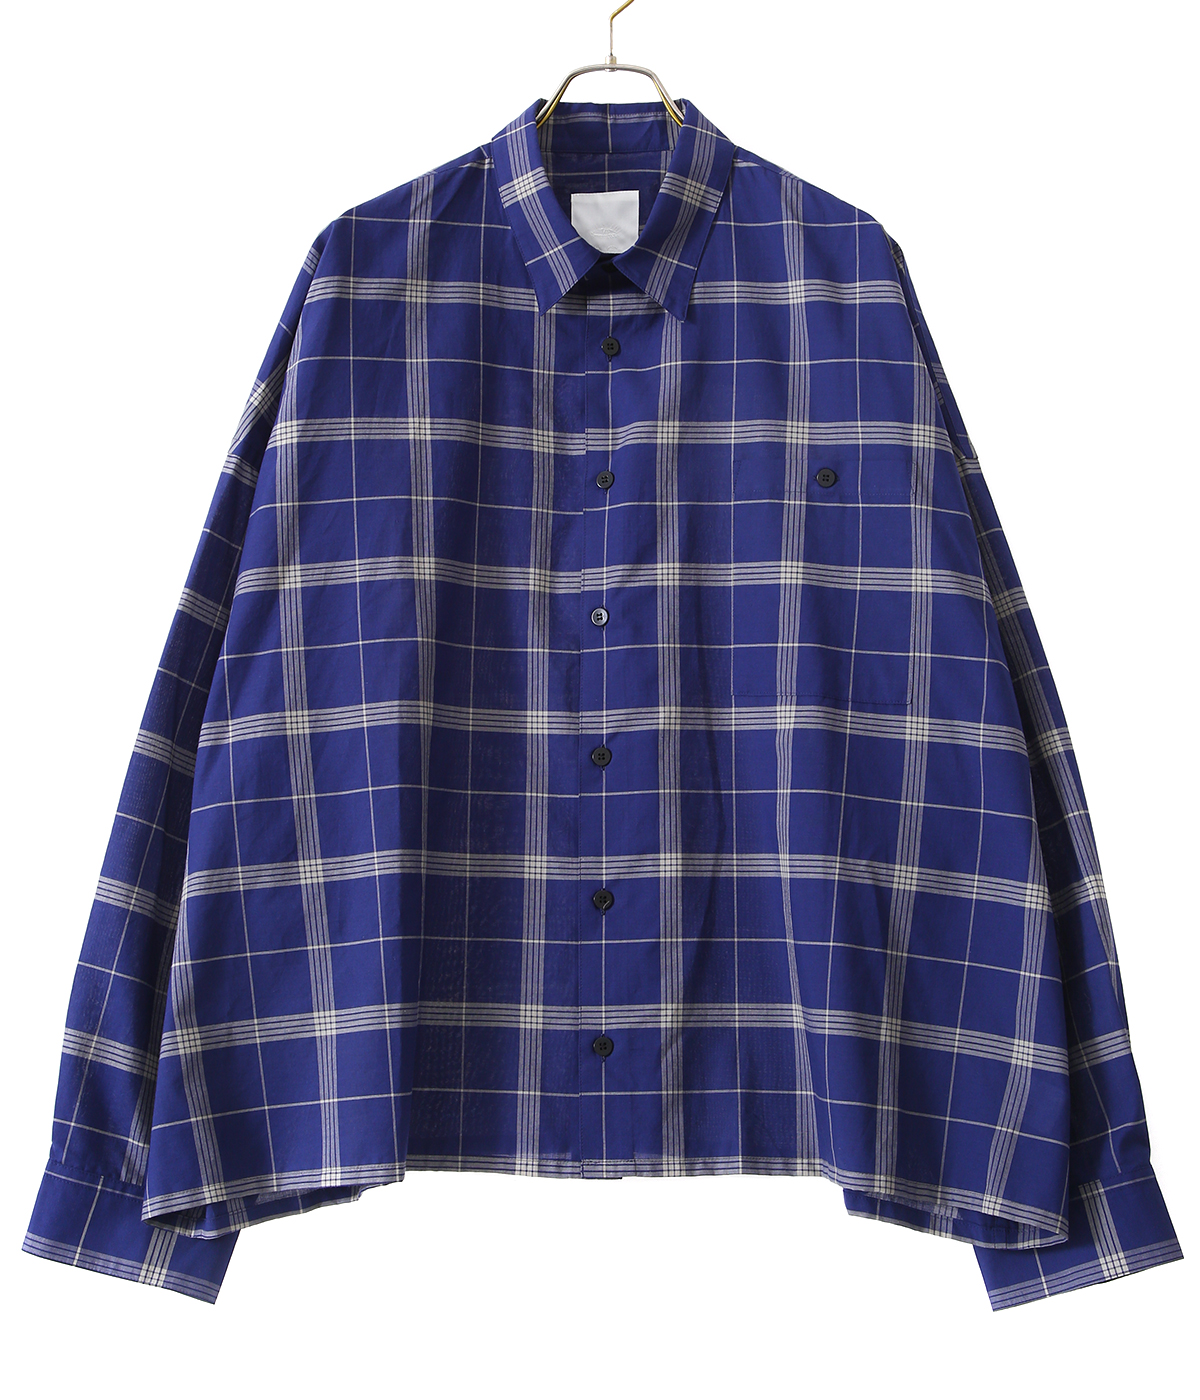 5X SHIRT -SHORT LENGTH/LONG SLEEVE-